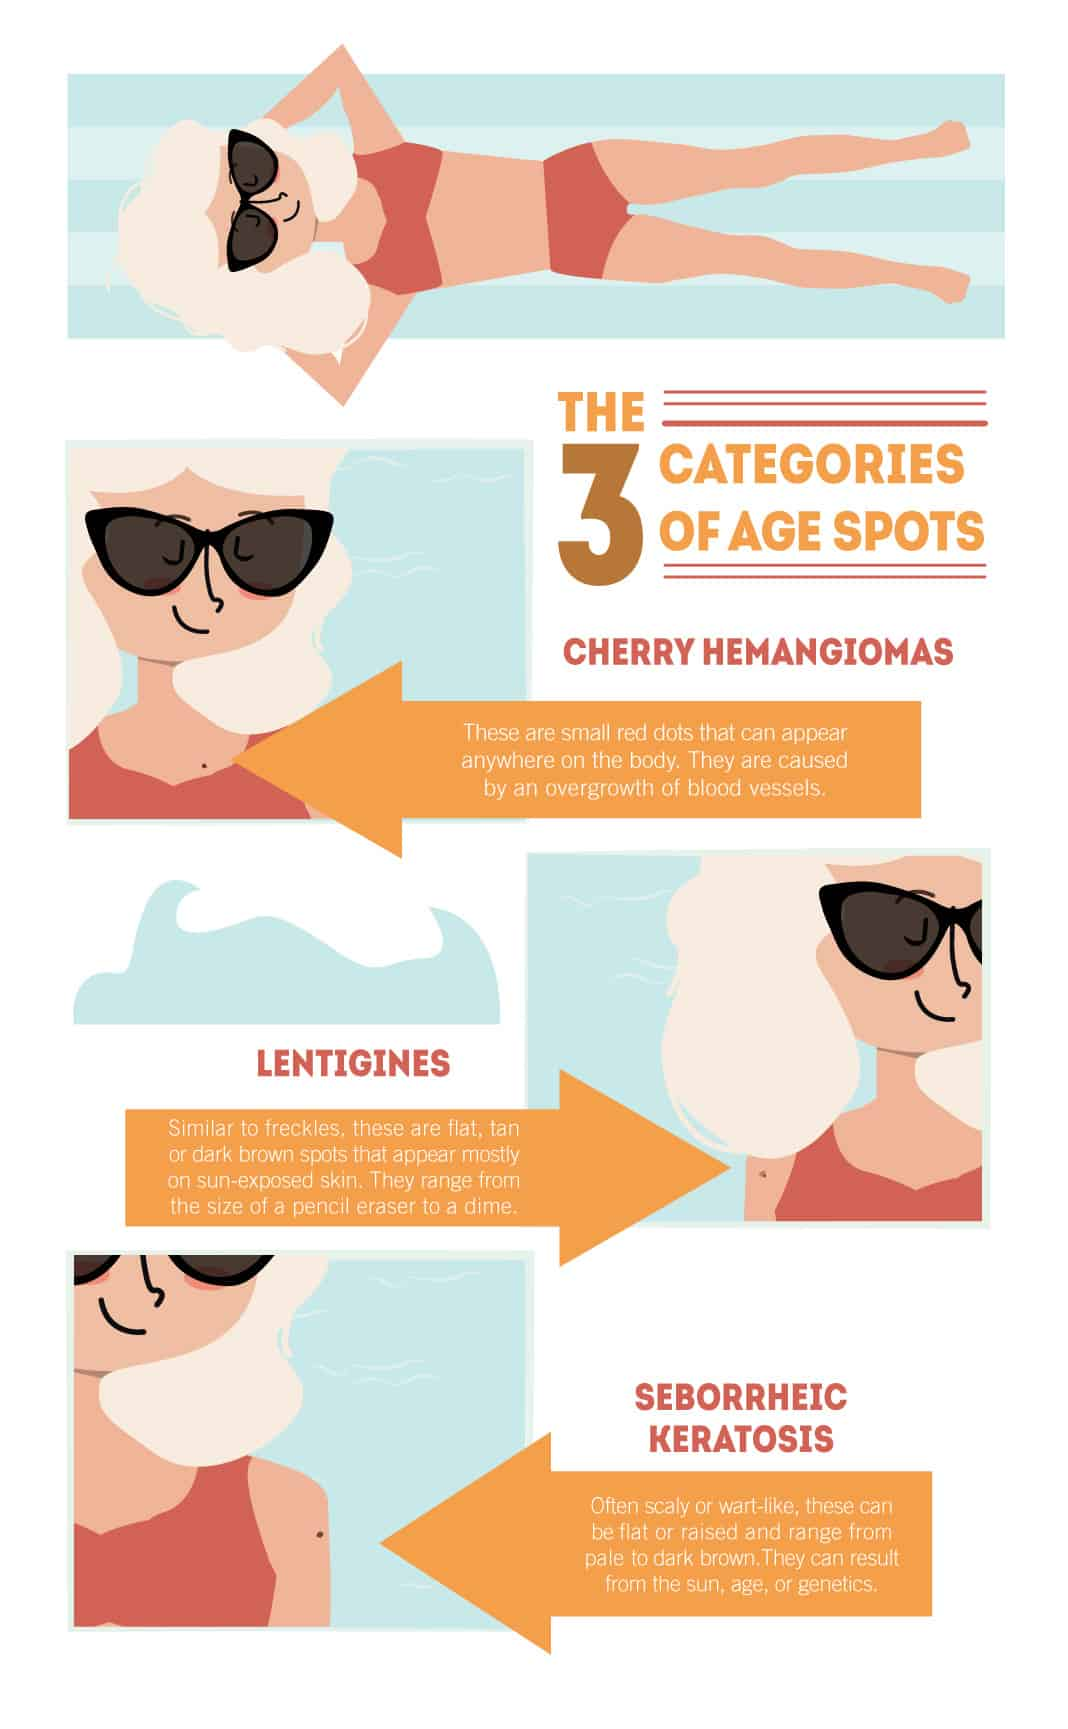 All About Age Spots: Causes, Treatment, and Prevention